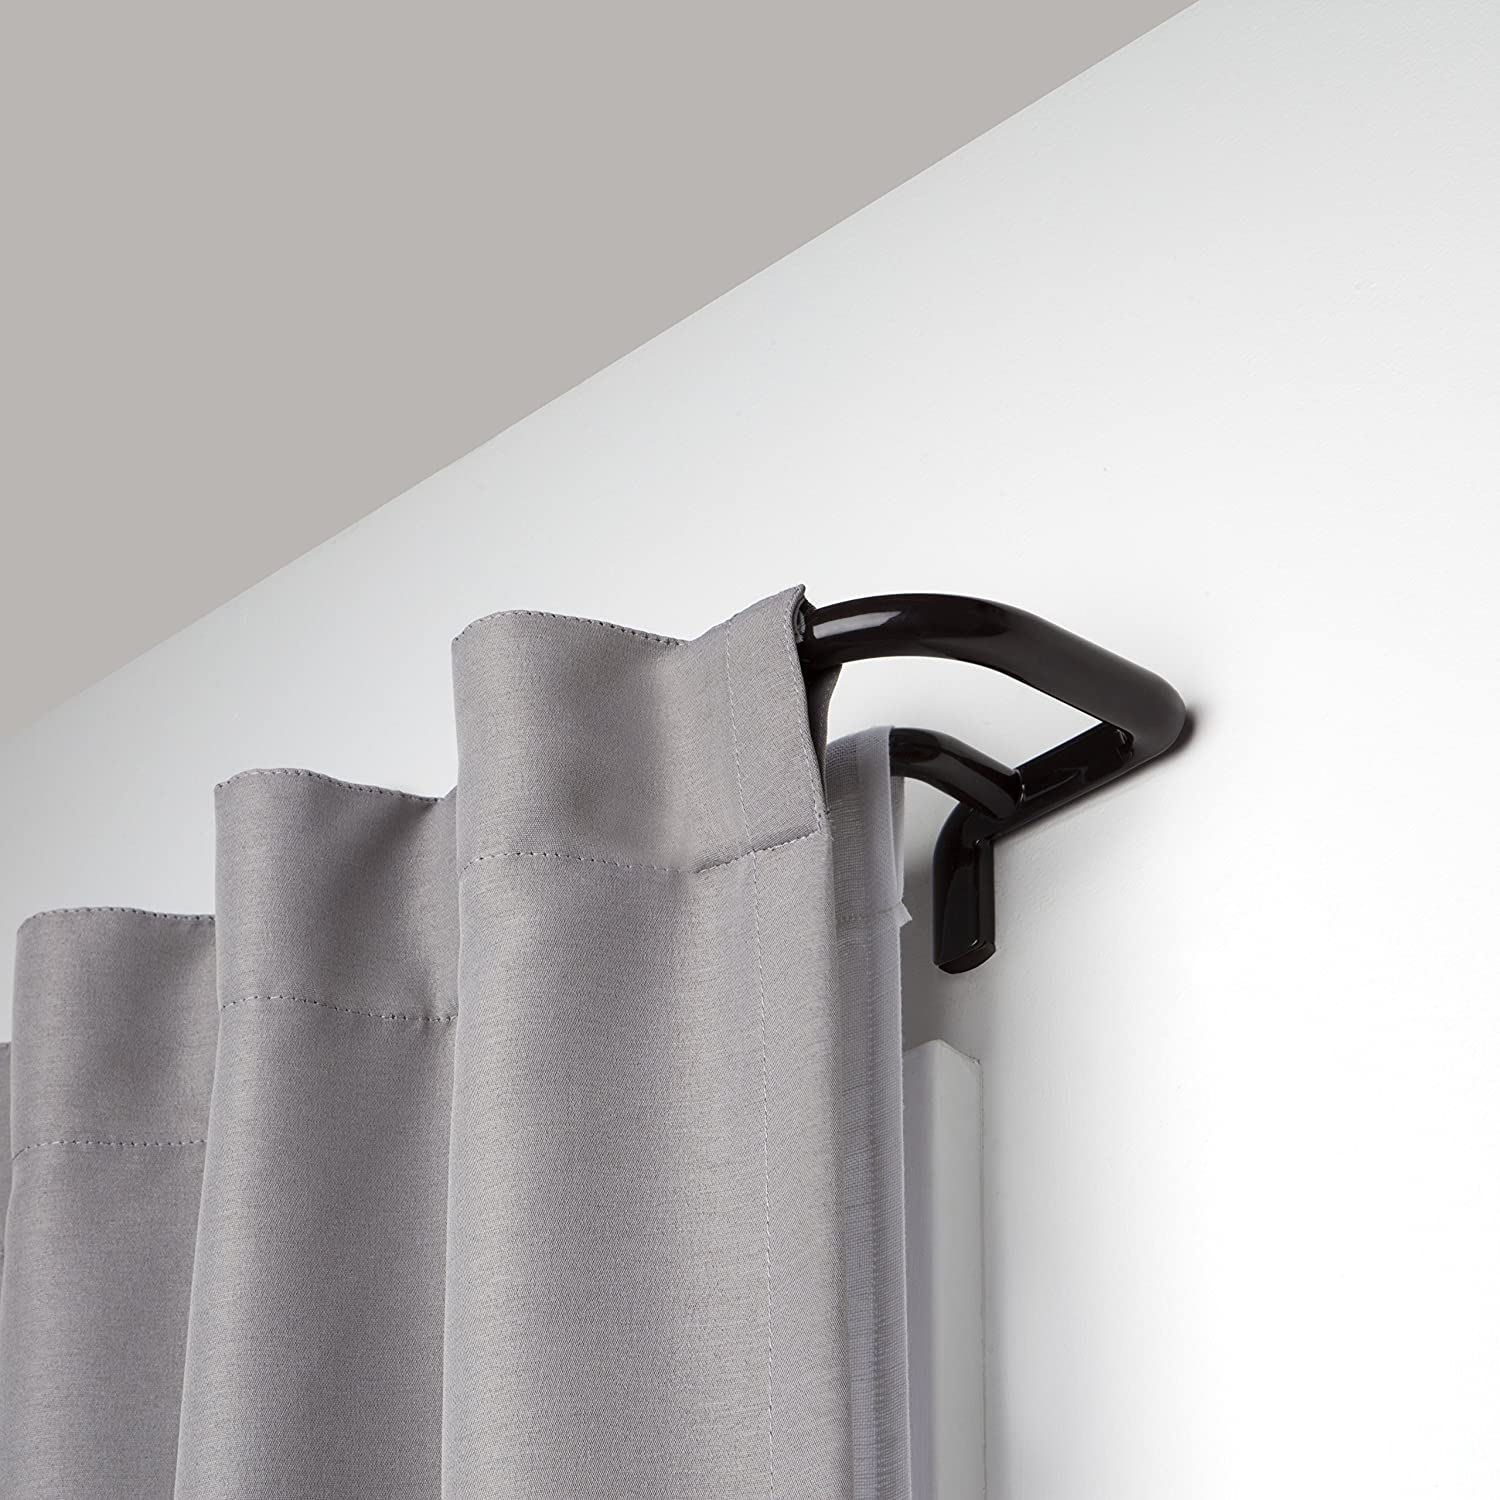 Wrap Around Design is Ideal for Blackout Room Darkening Curtains, 88 to 144 Inch, Auburn Bronze